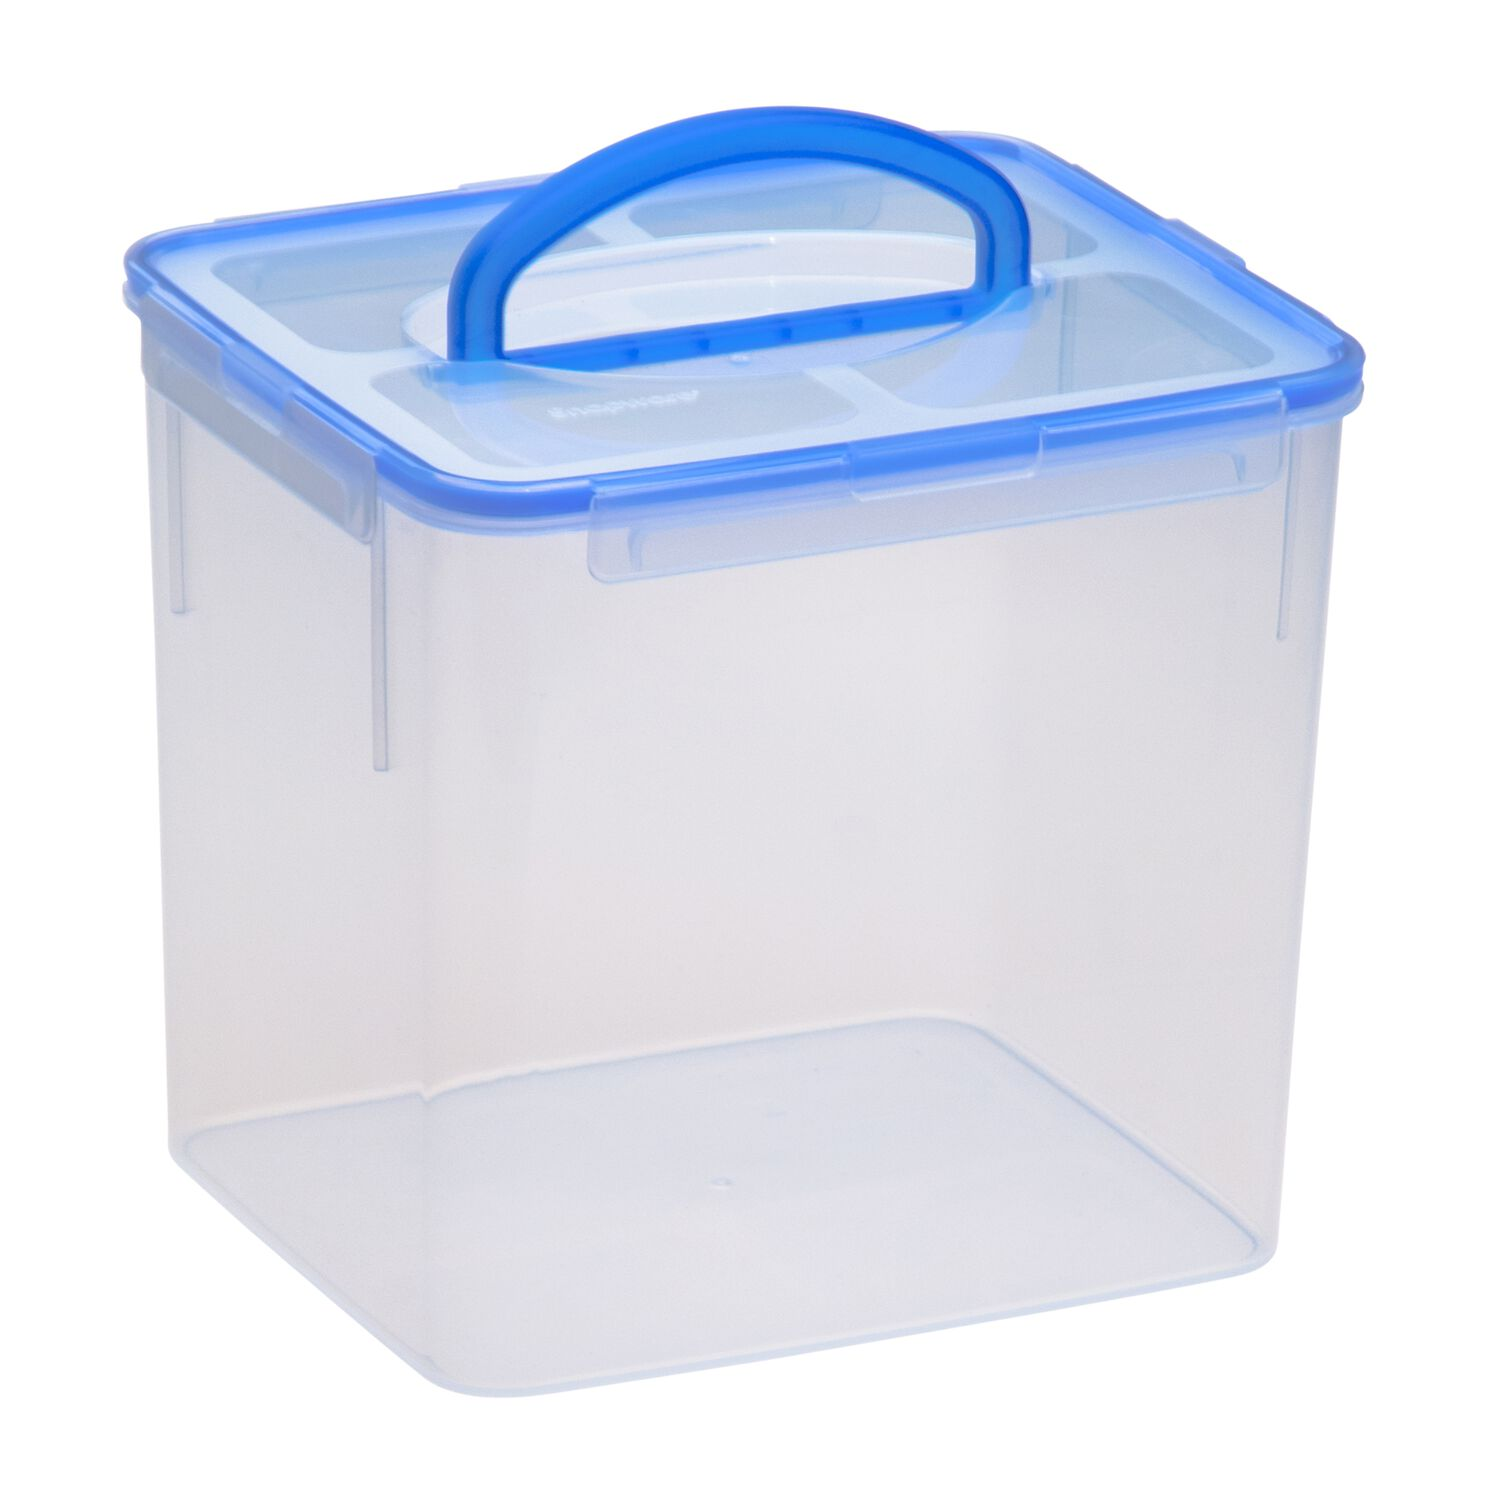 Snapware Airtight Food Storage 40 Cup Rectangular Container